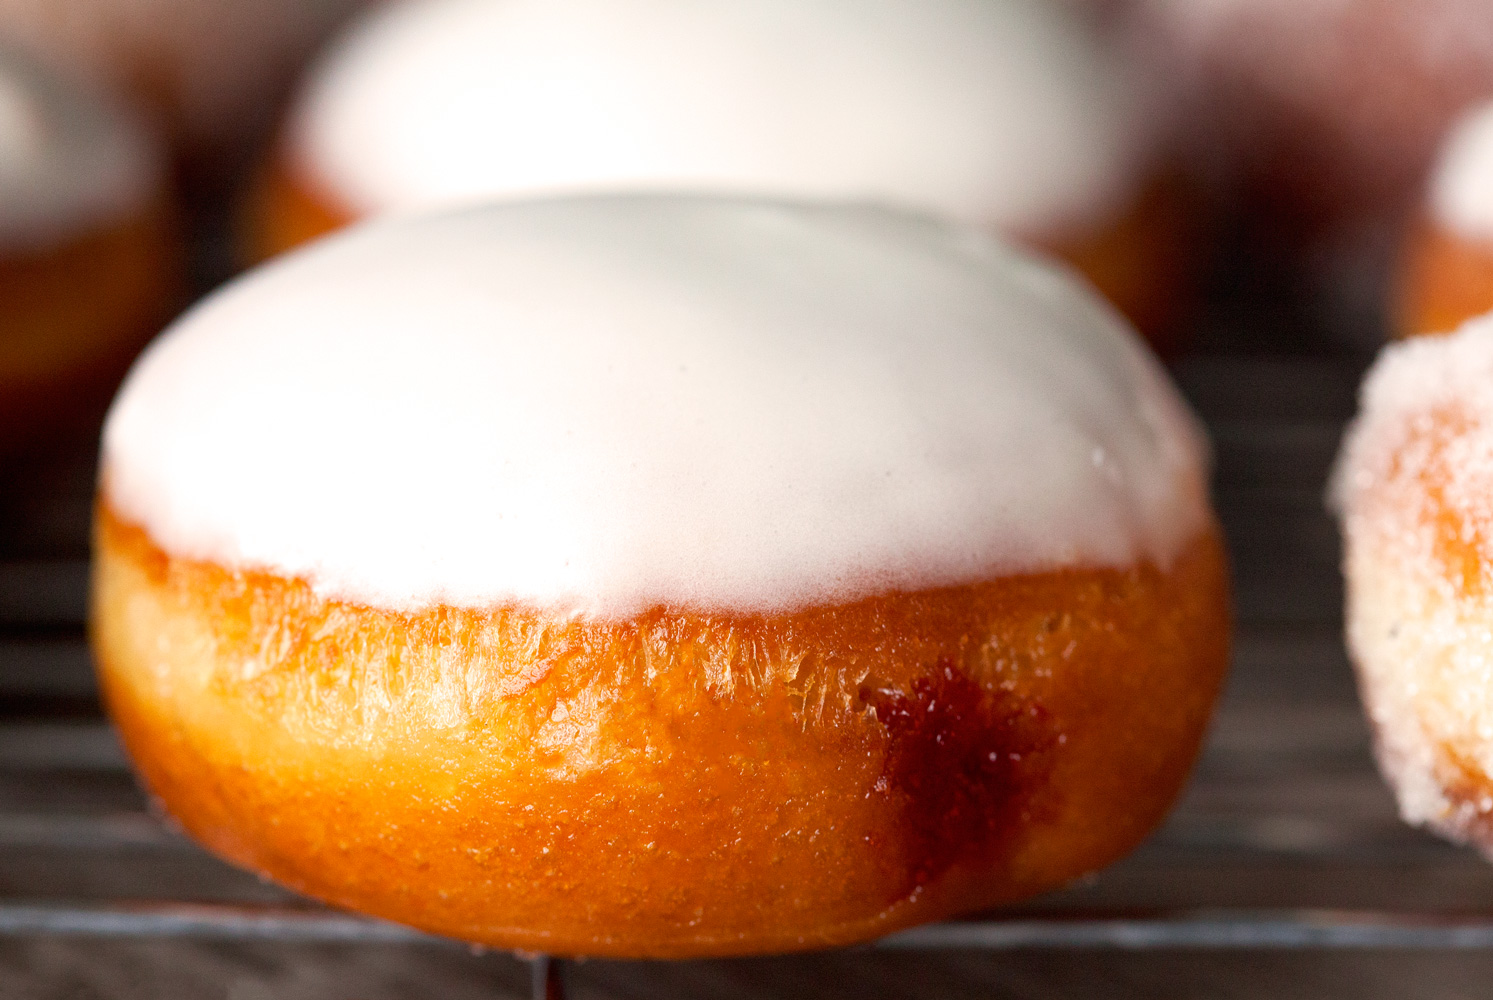 Homemade Jelly-Filled Doughnuts by Deliciously Yum!